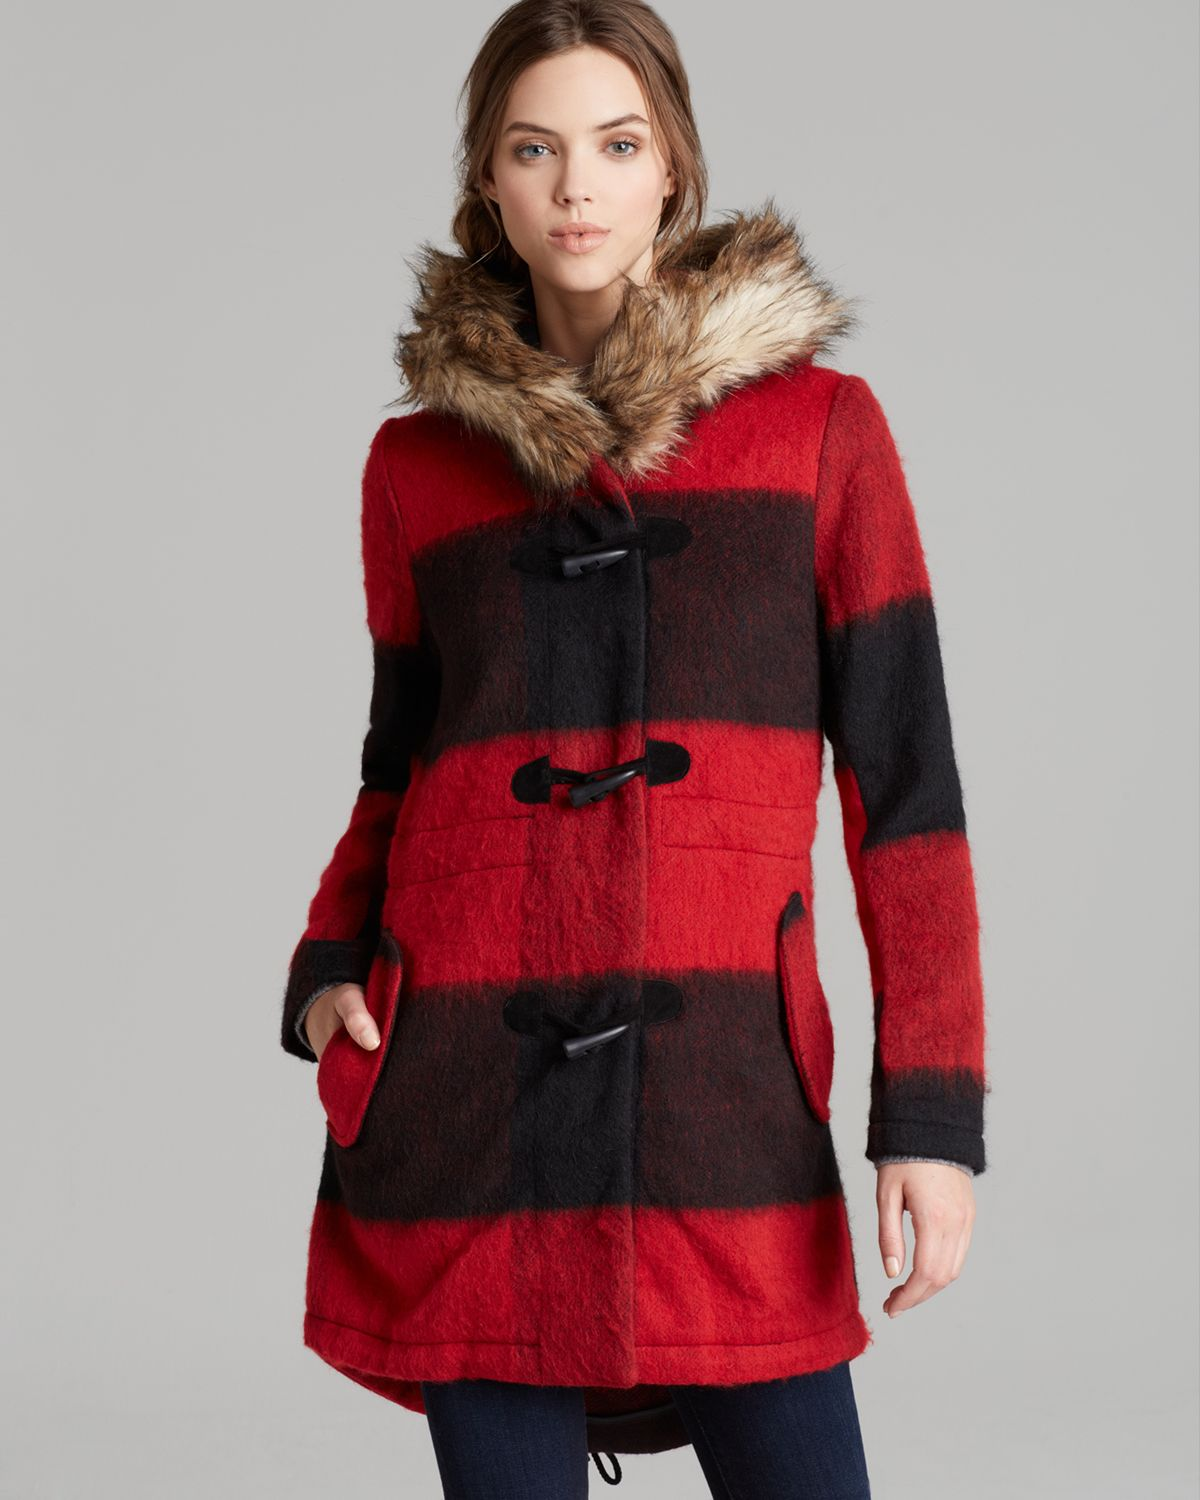 BB Dakota Coat - Buffalo Plaid Hooded | Bloomingdale's